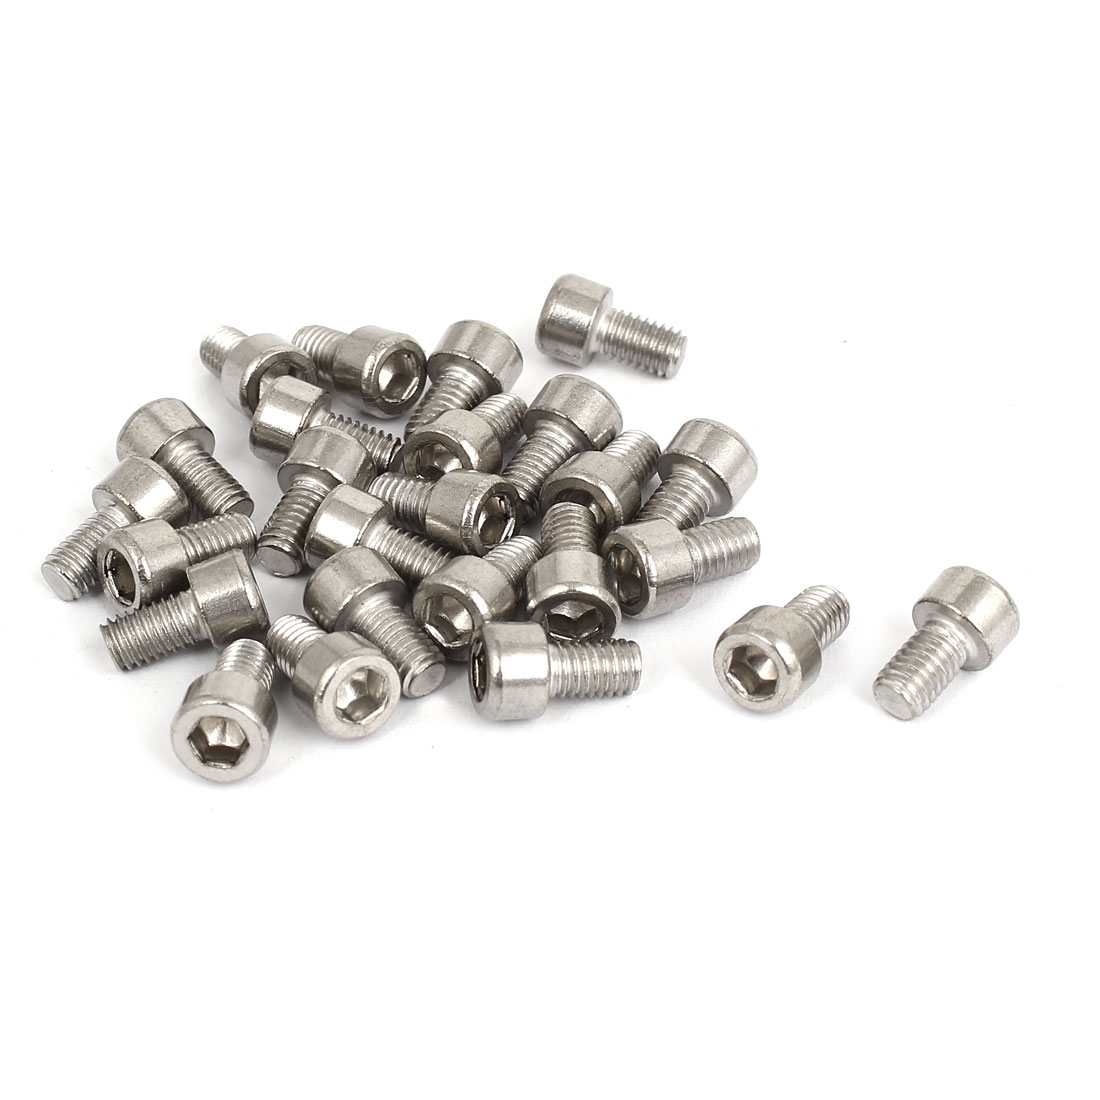 25pcs 4mm Stainless Steel Hex Key Socket Head Cap Screws Bolts M5x0.8mmx8mm